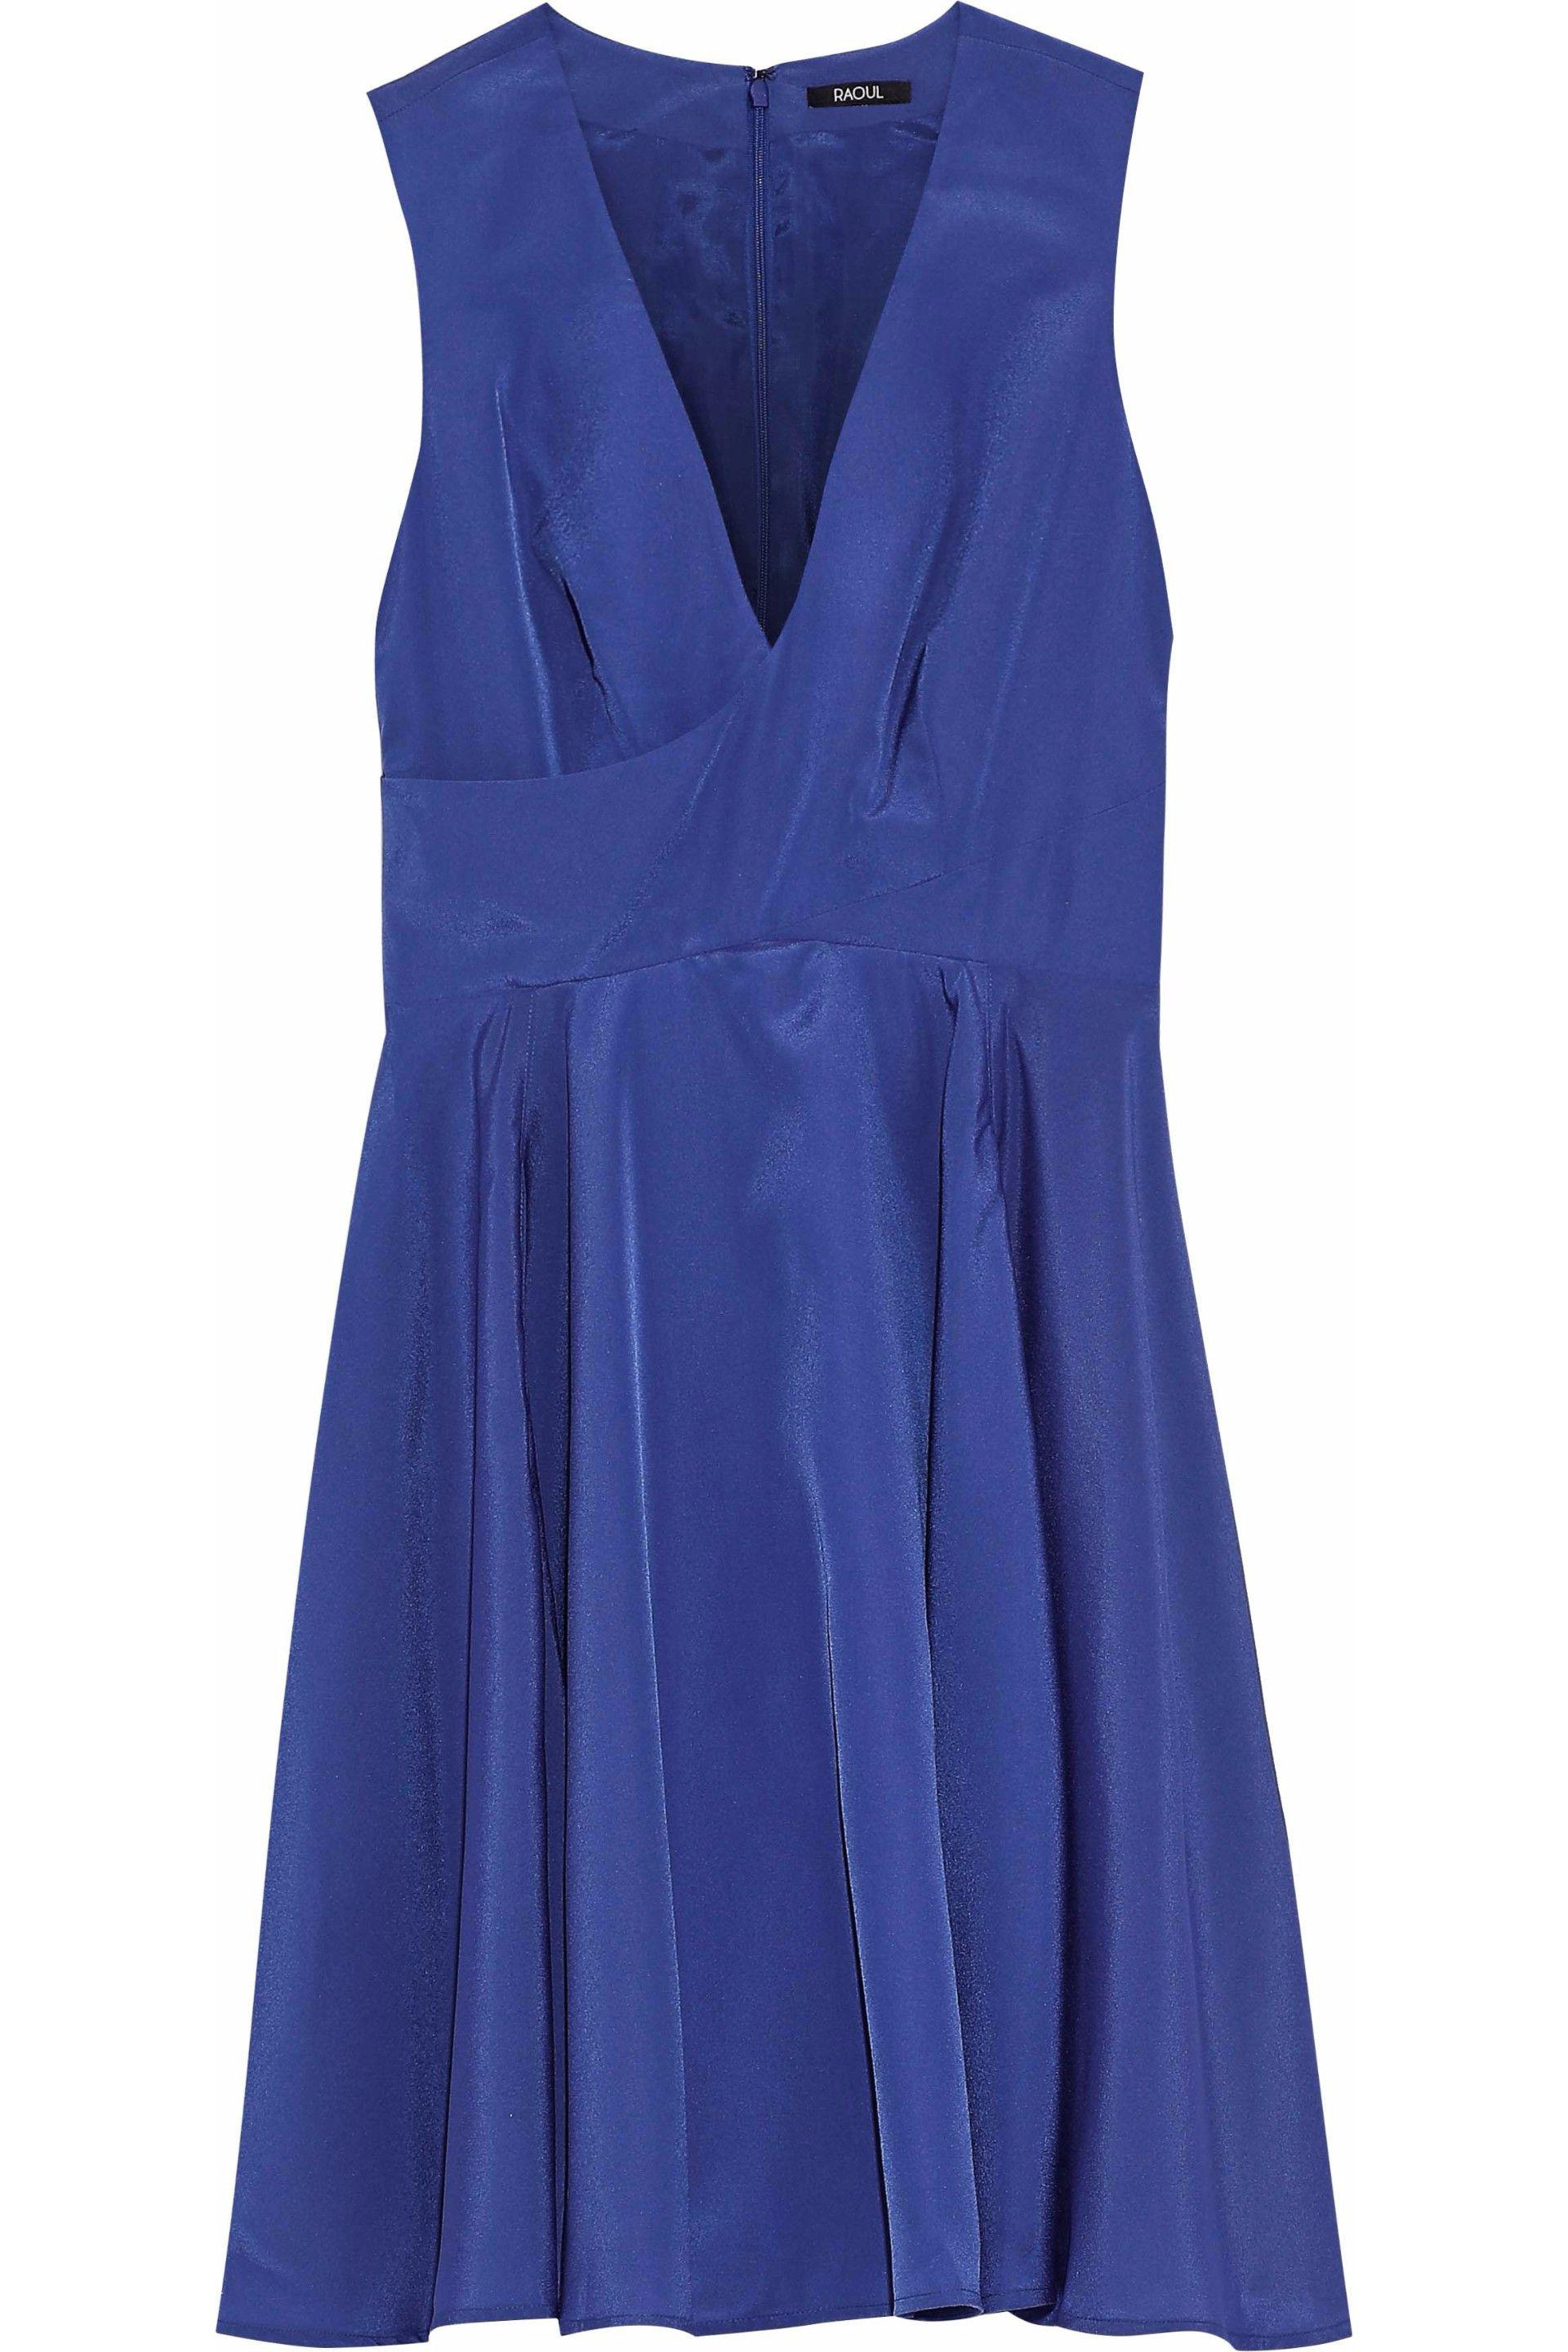 Raoul Woman Bow-embellished Pleated Crepe De Chine Peplum Top Royal Blue Size M Raoul For Sale Cheap Online The Best Store To Get RmVnmOA